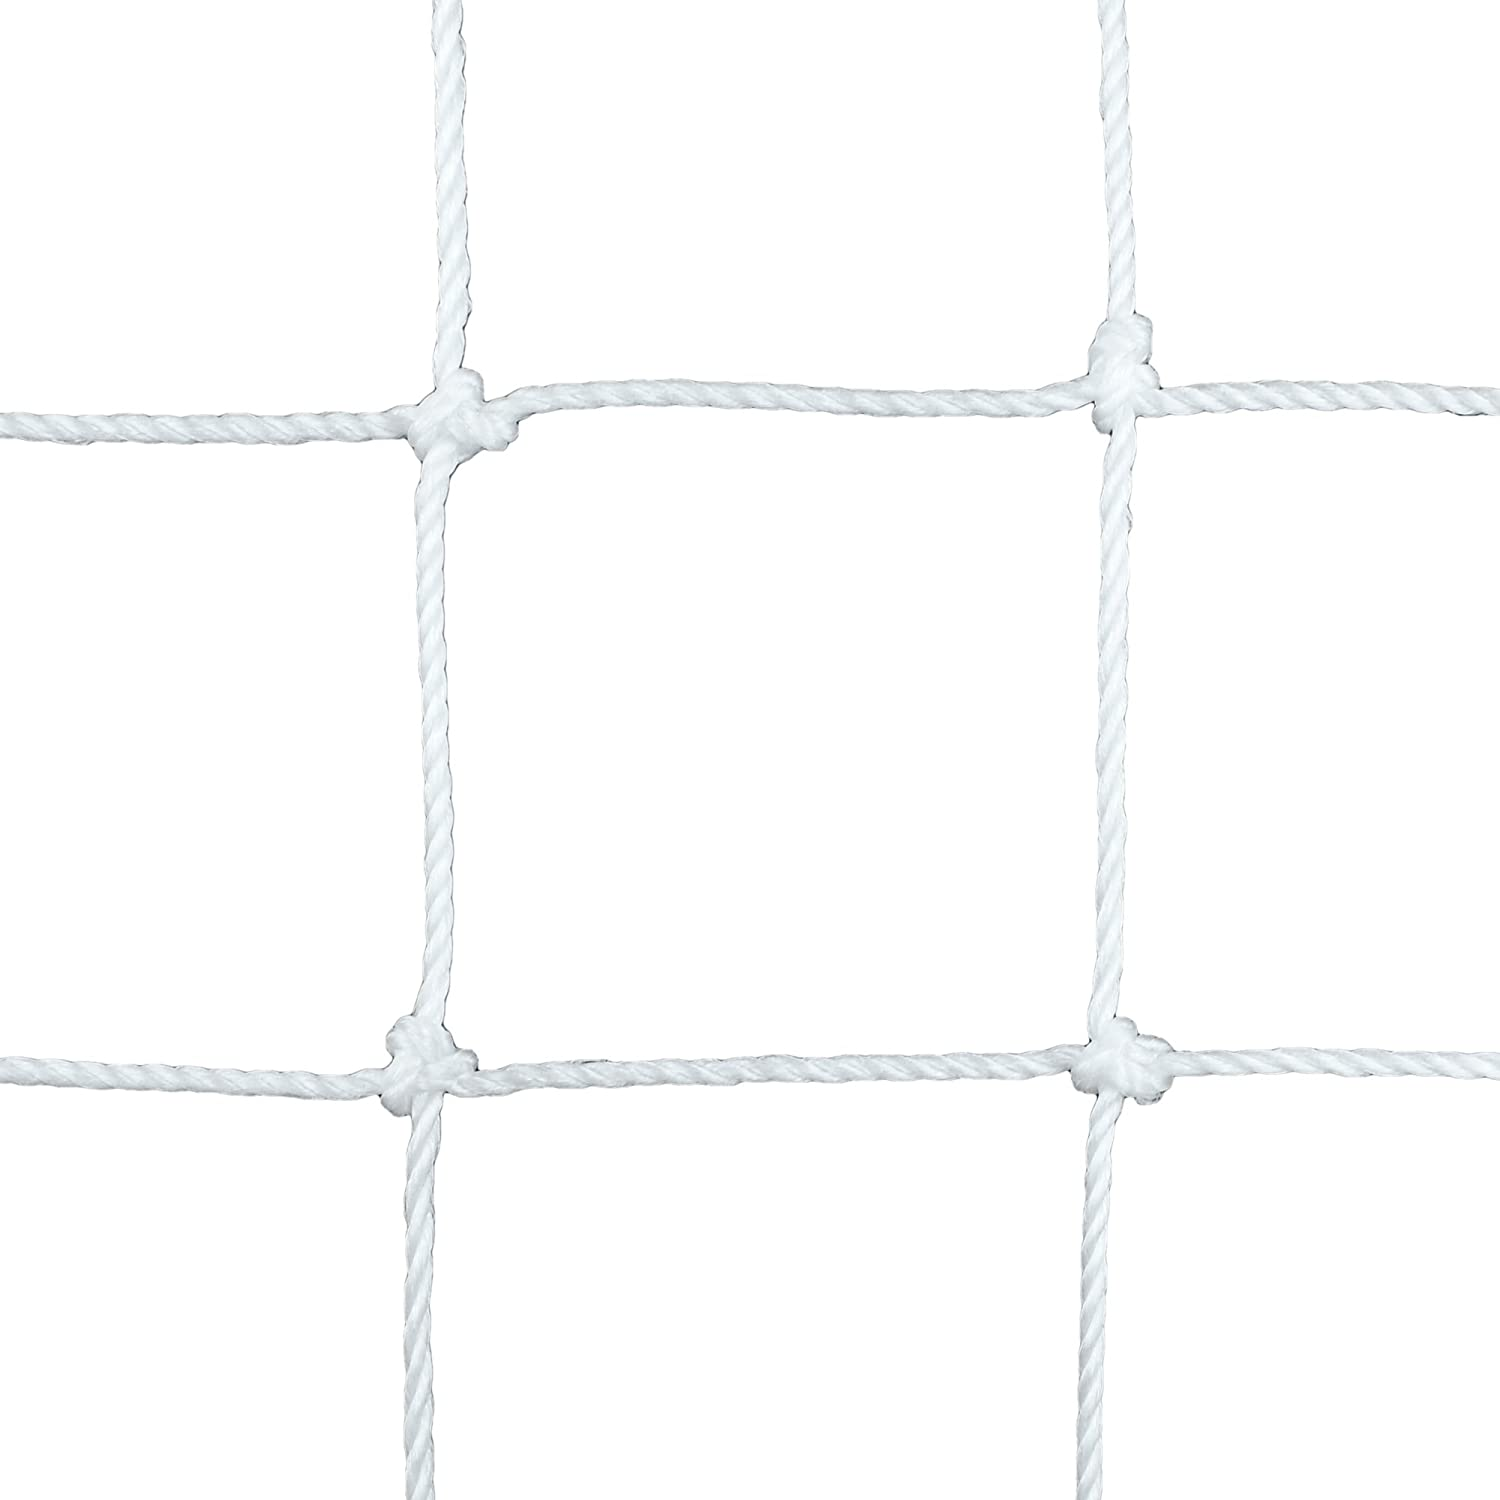 アゴラ4 mm Net for 4 ' x6 ' Soccer目標with奥行各   B074HHTS6J